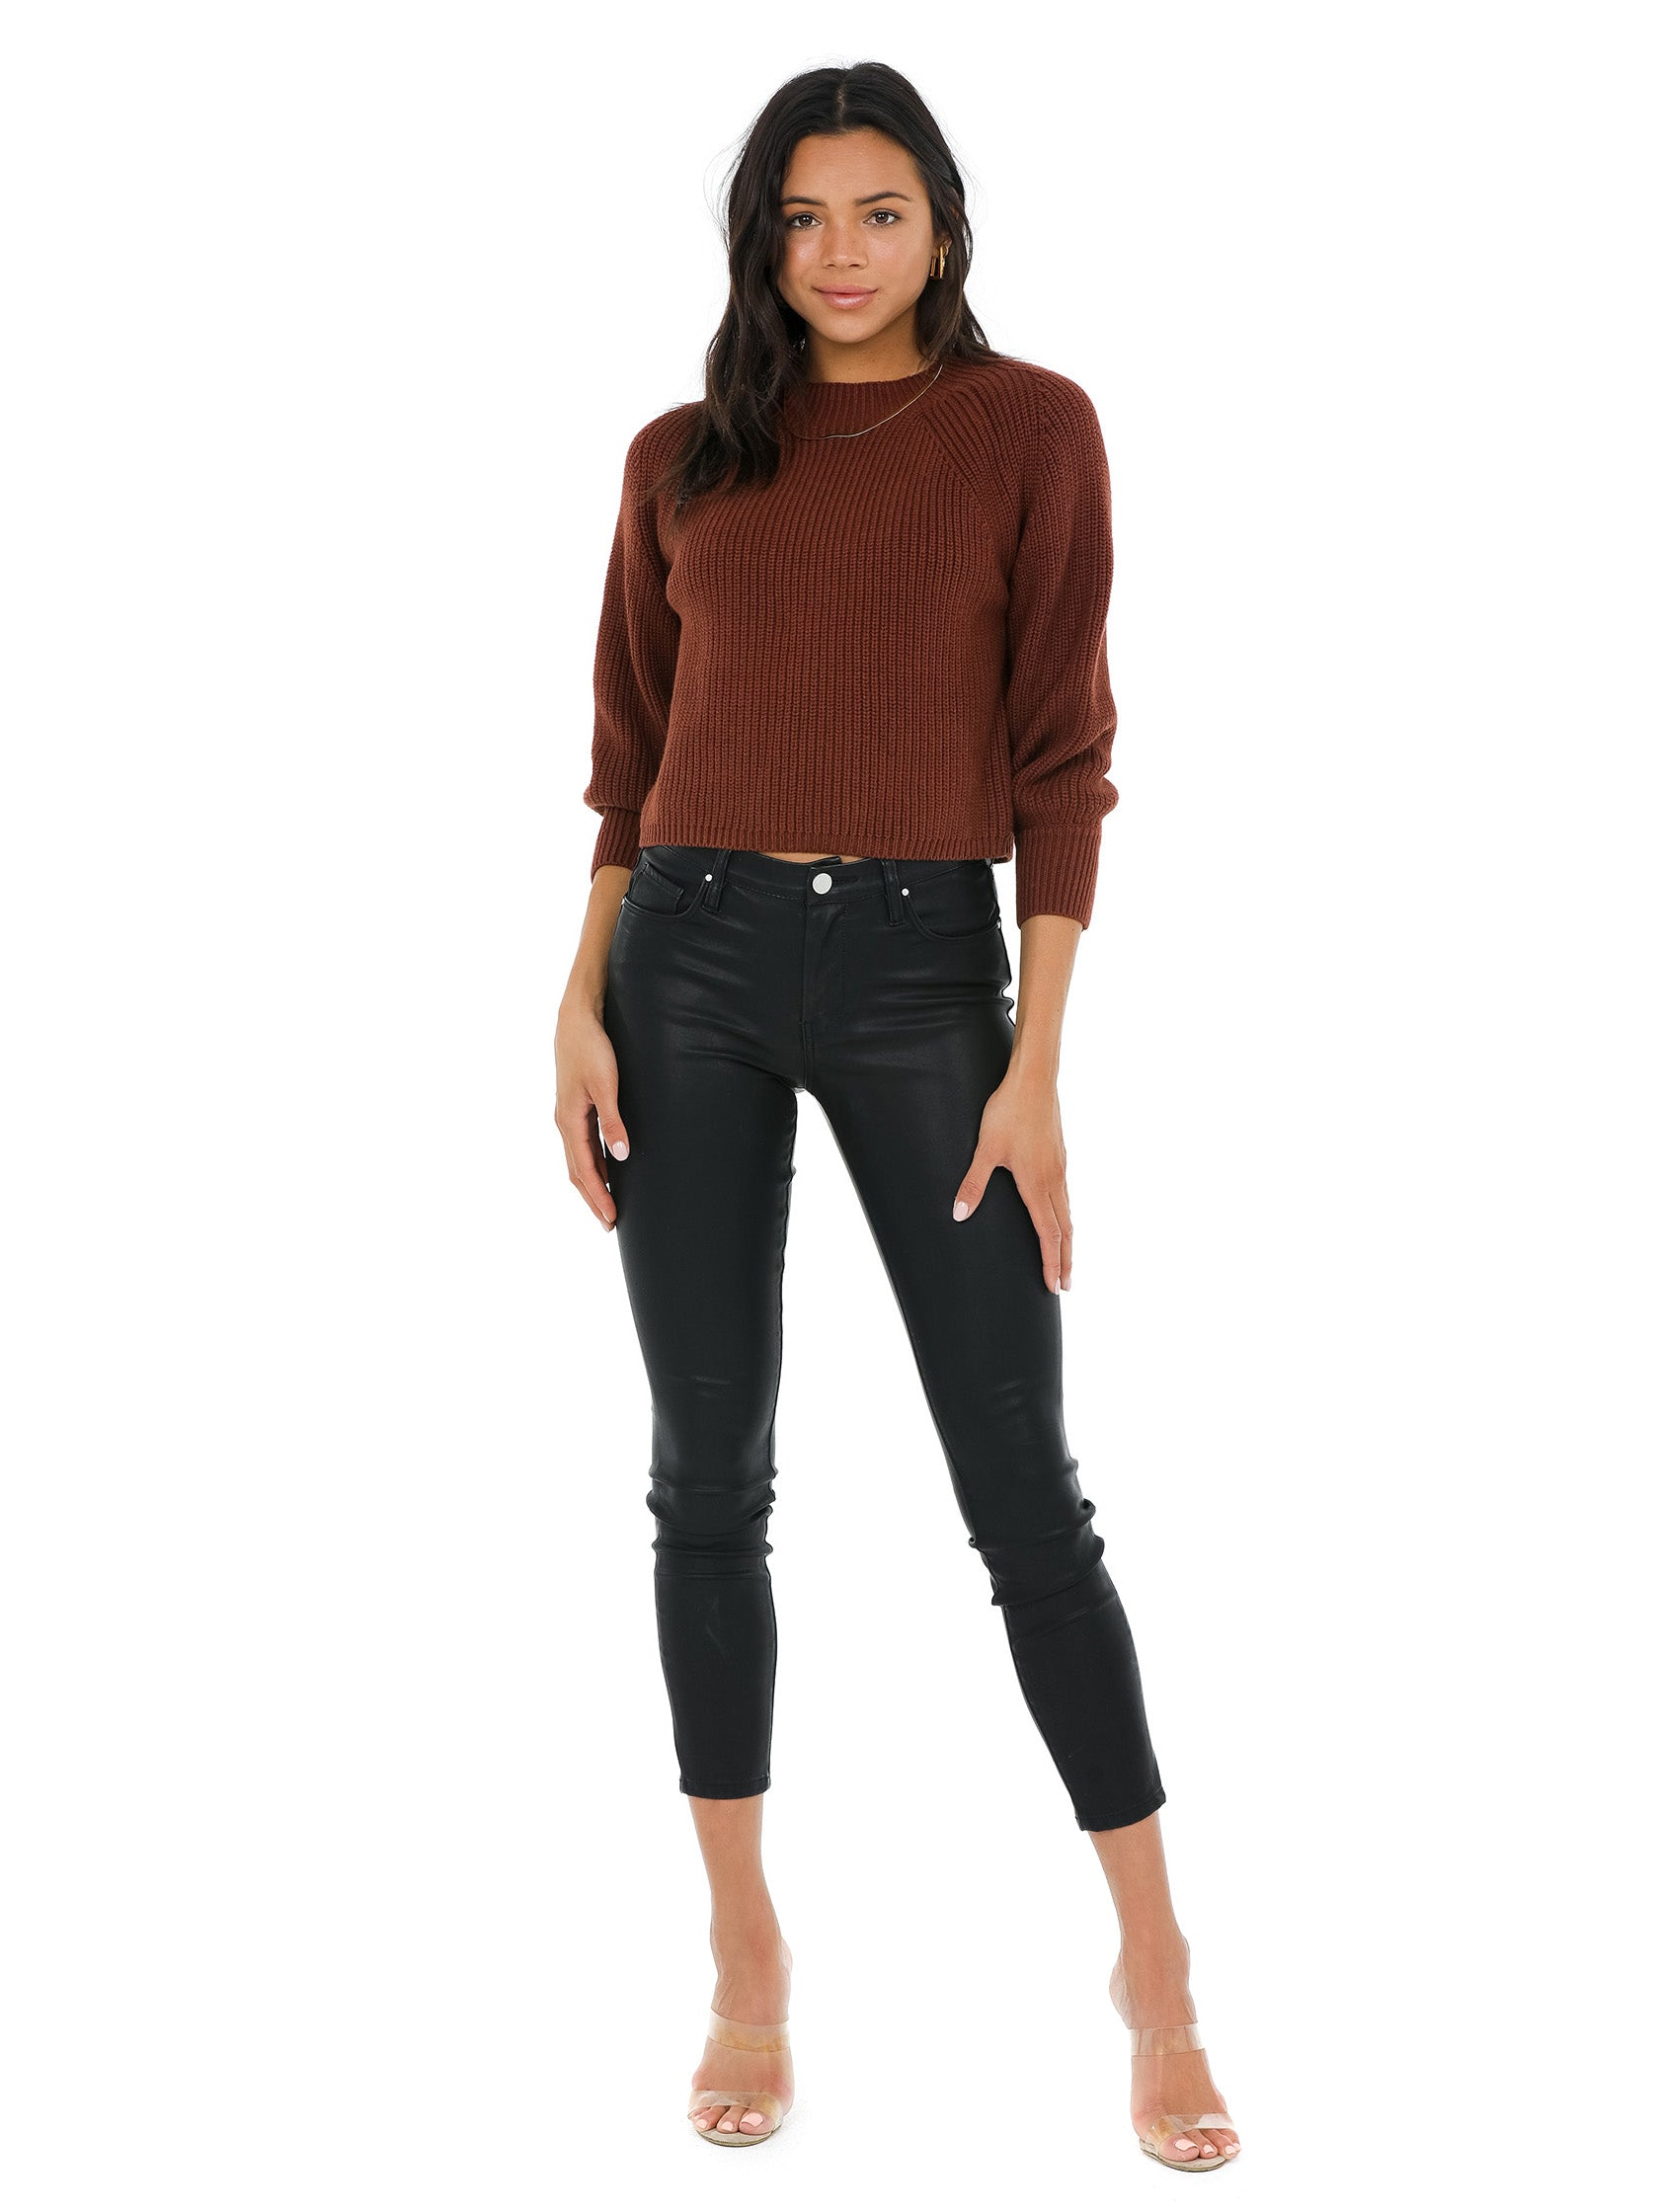 Girl wearing a sweater rental from 525 called Balloon Sleeve Cropped Sweater